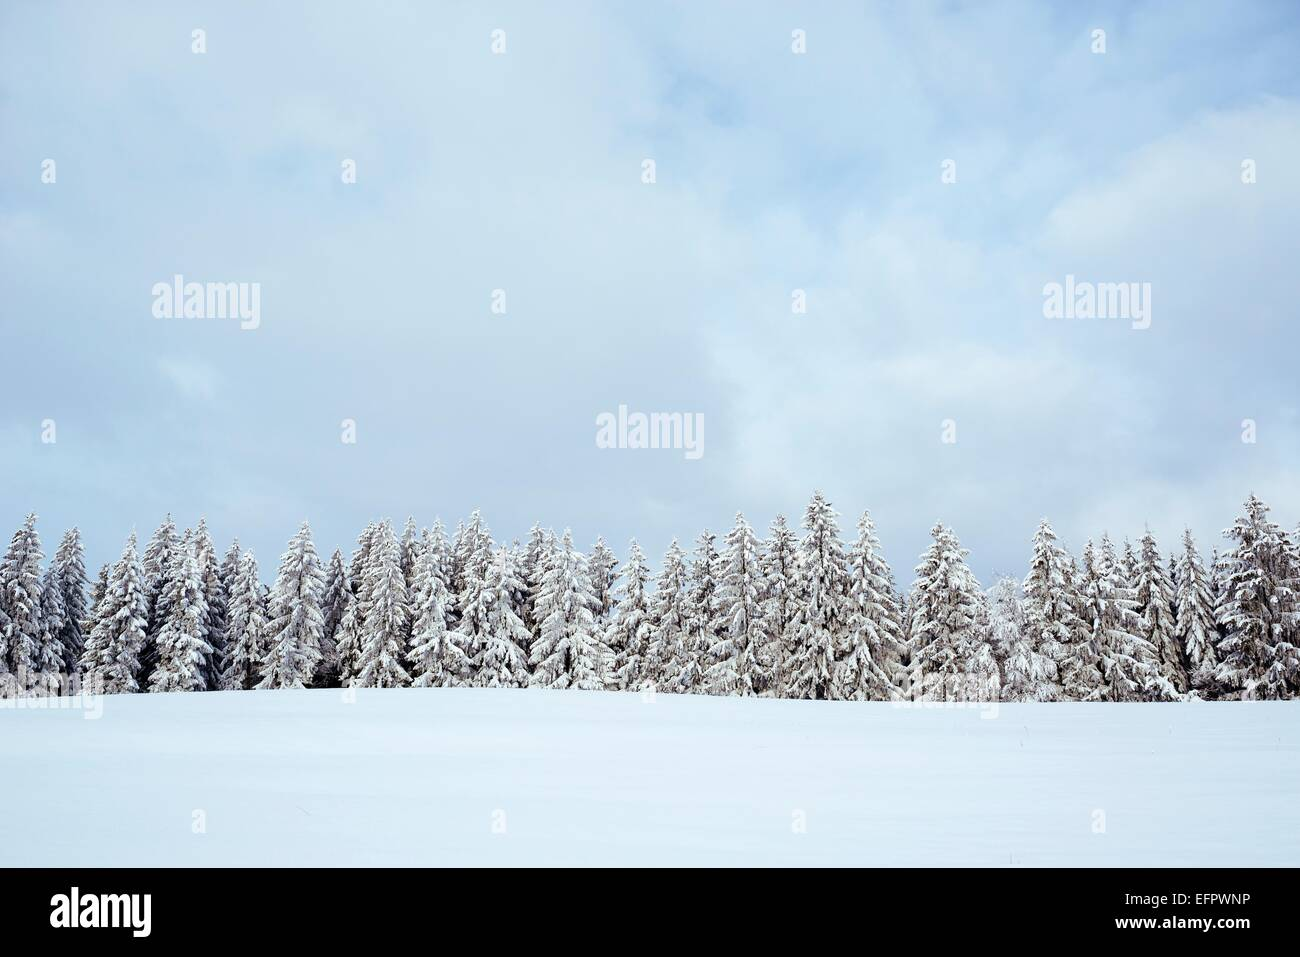 Snow-covered firs (Abies), Baden-Württemberg, Germany - Stock Image